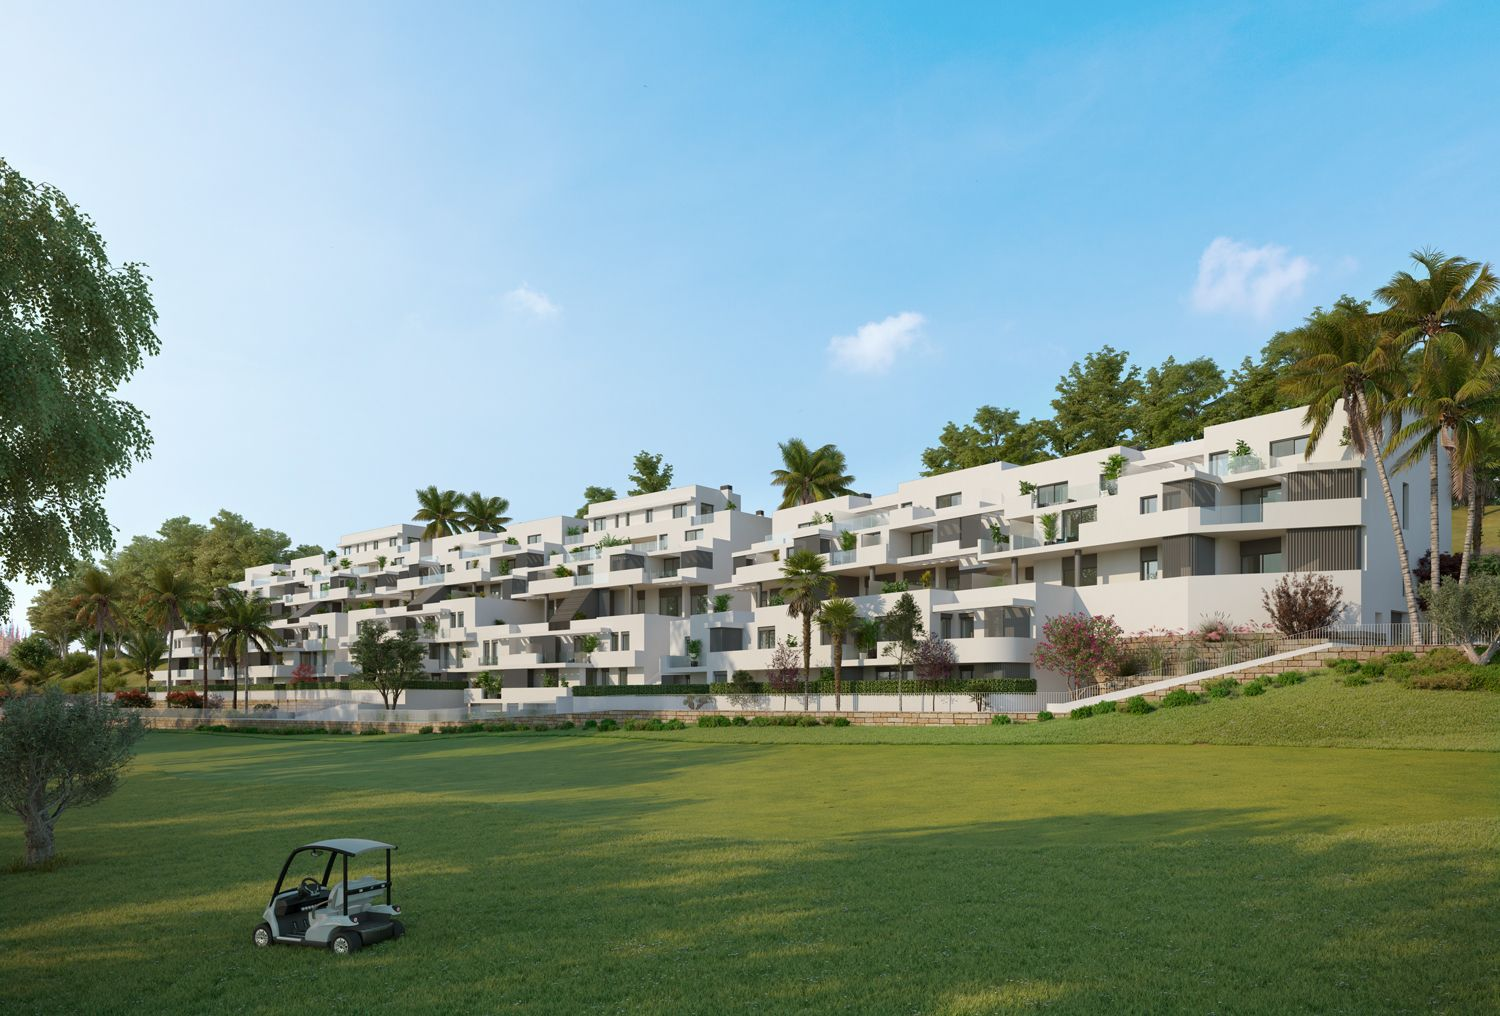 Apartments with views over golf courses in Estepona 6